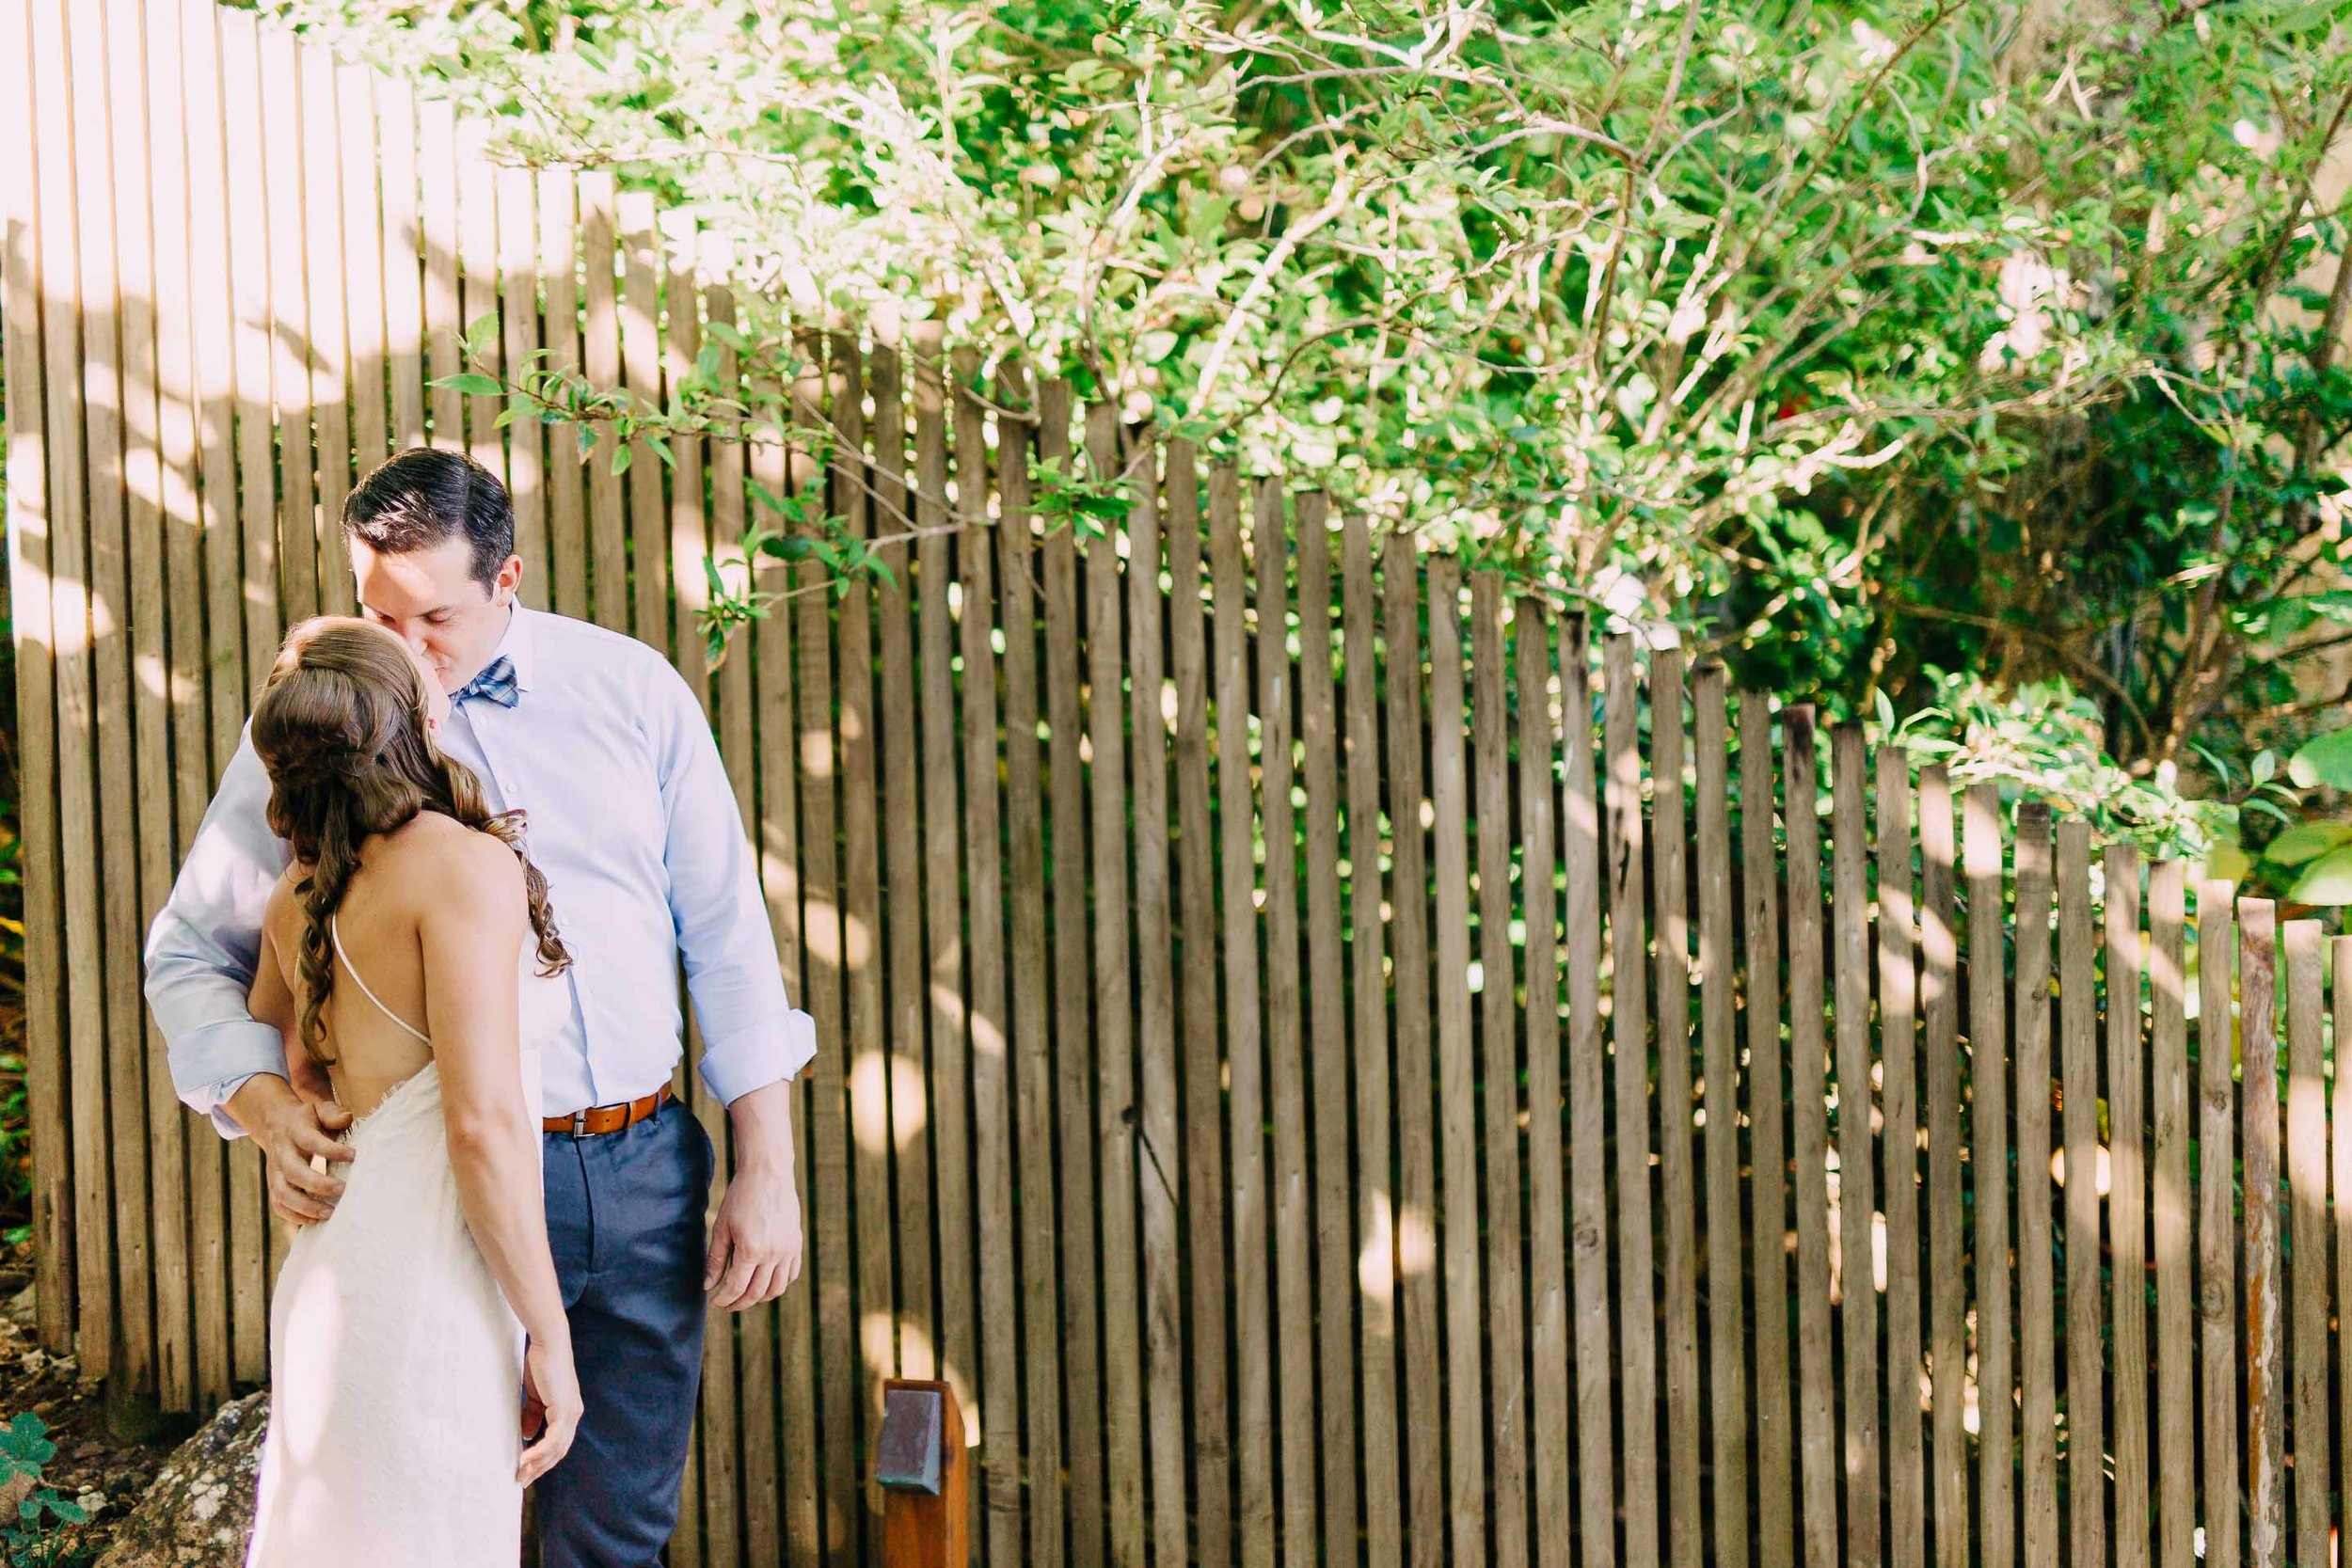 Fiji bride and groom kiss in front of a bamboo wall.